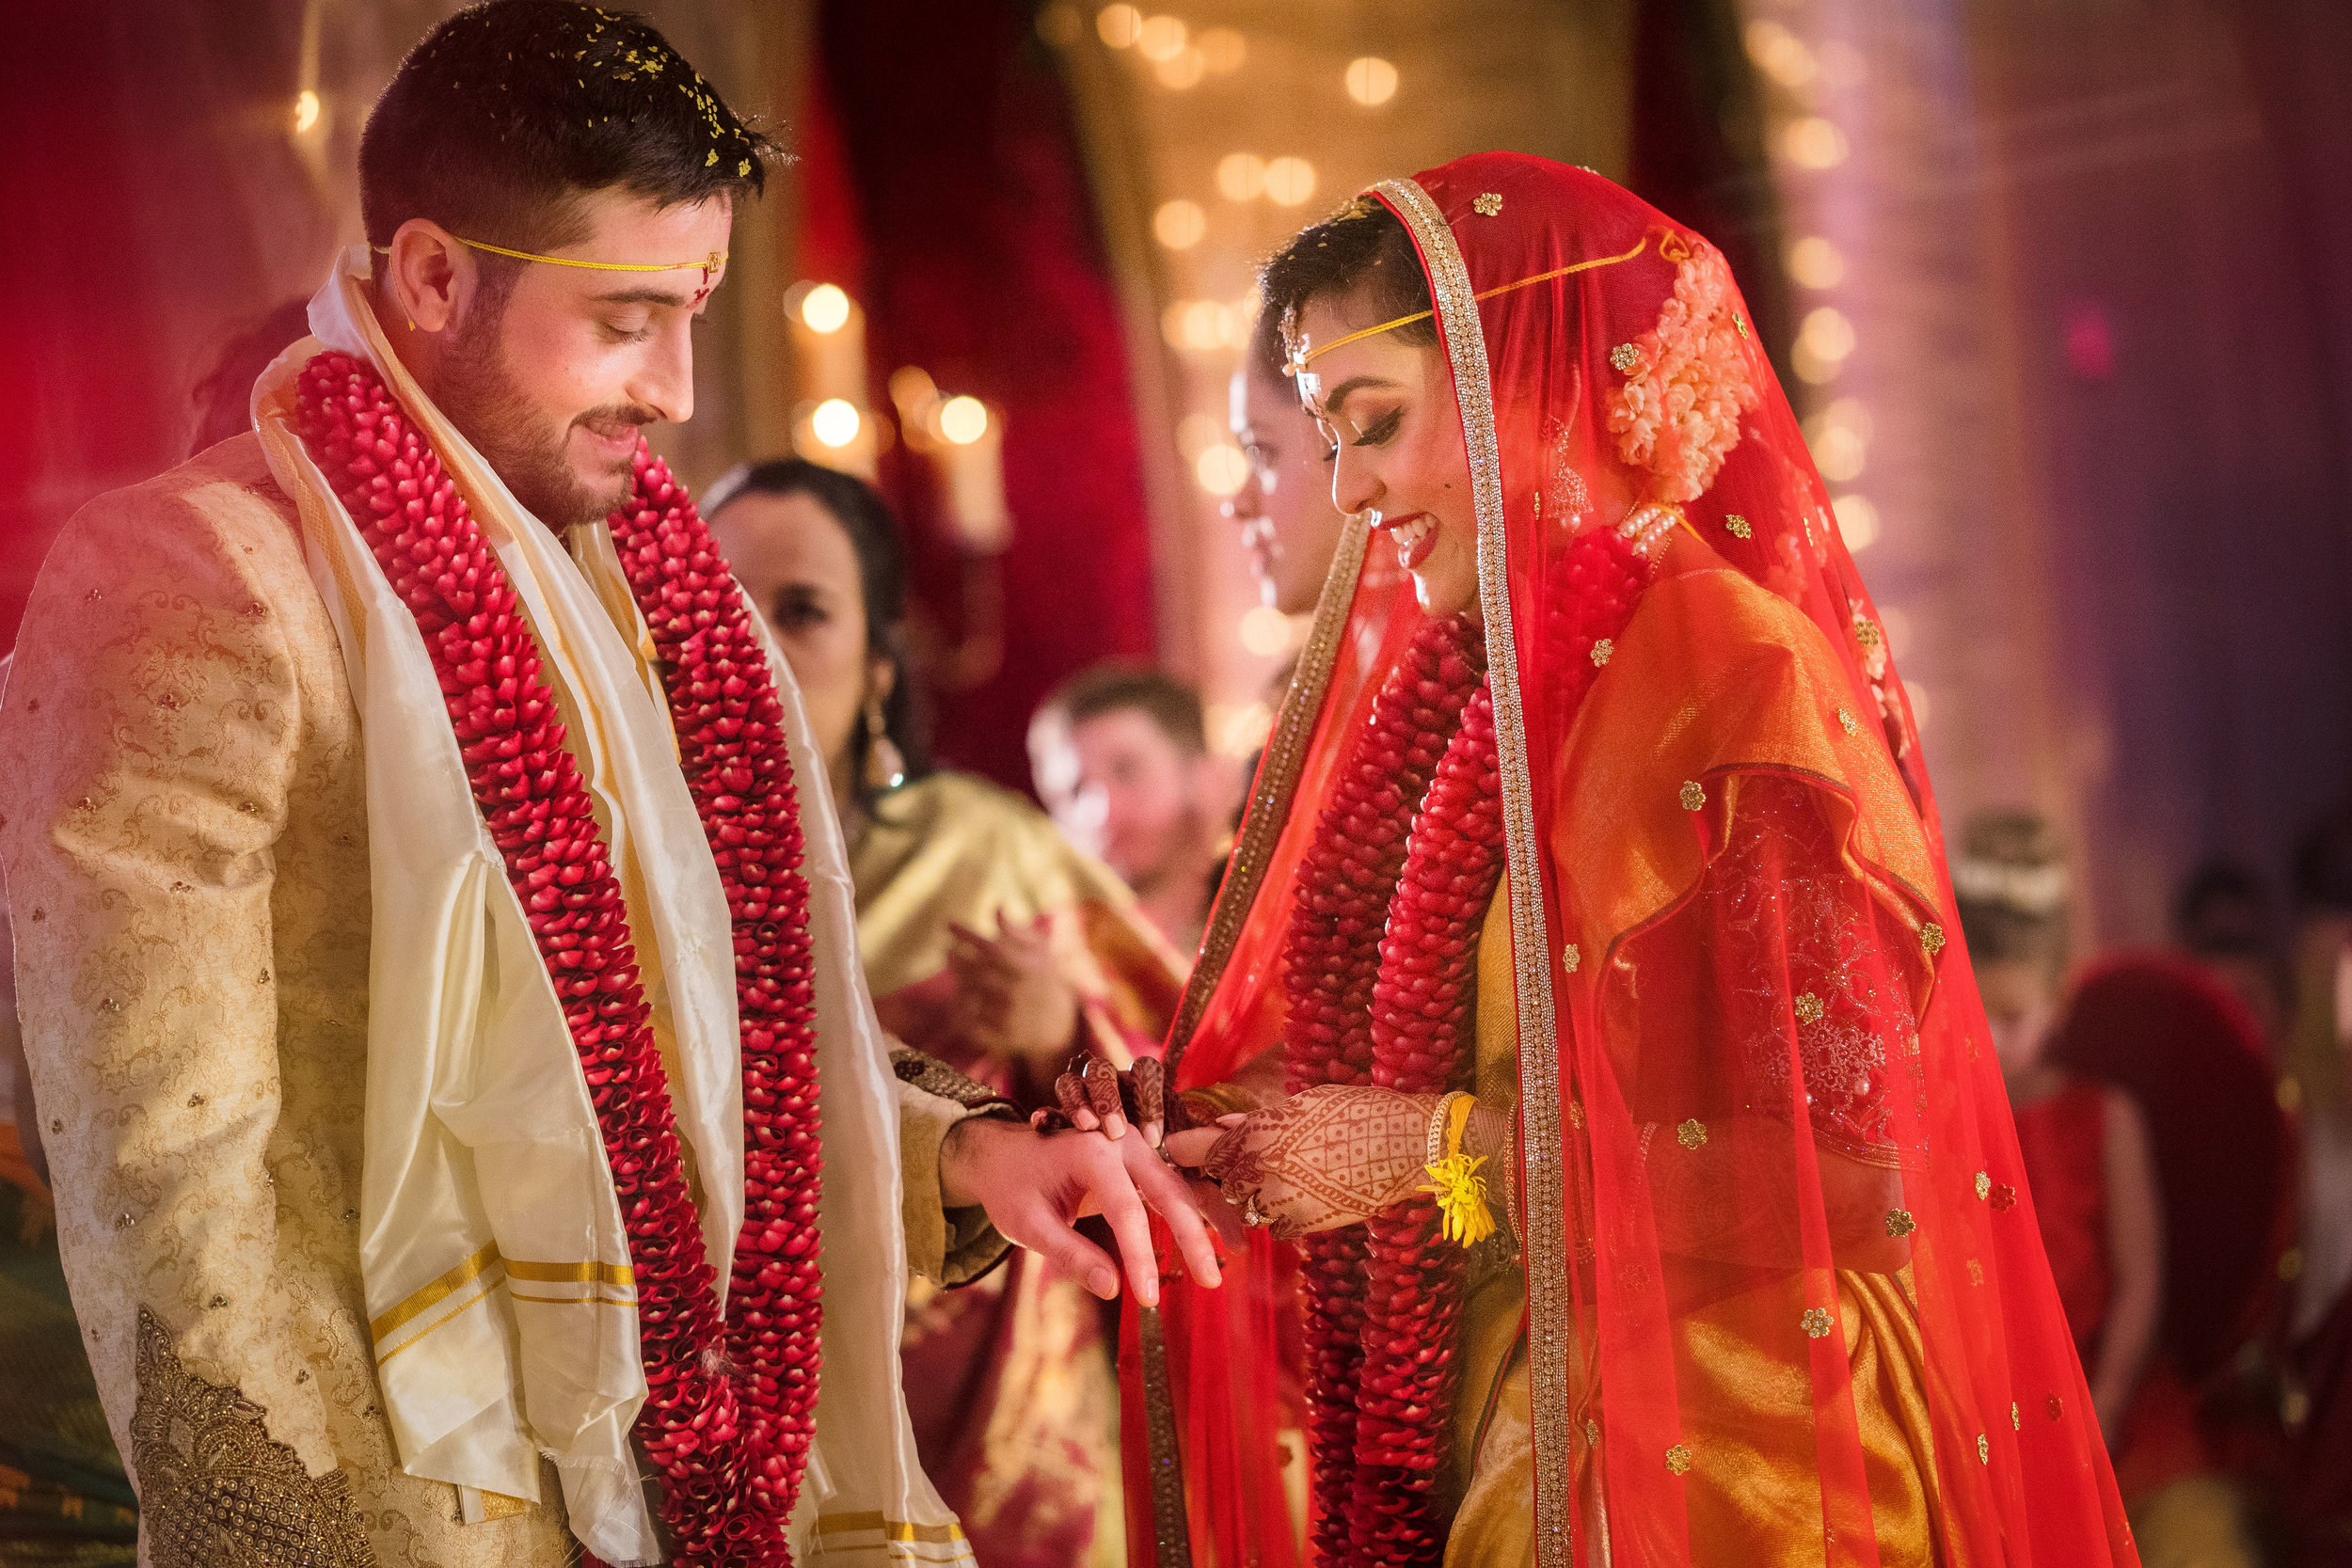 INDIAN WEDDING BRIDE AND GROOM CEREMONY EXCHANGE.JPG